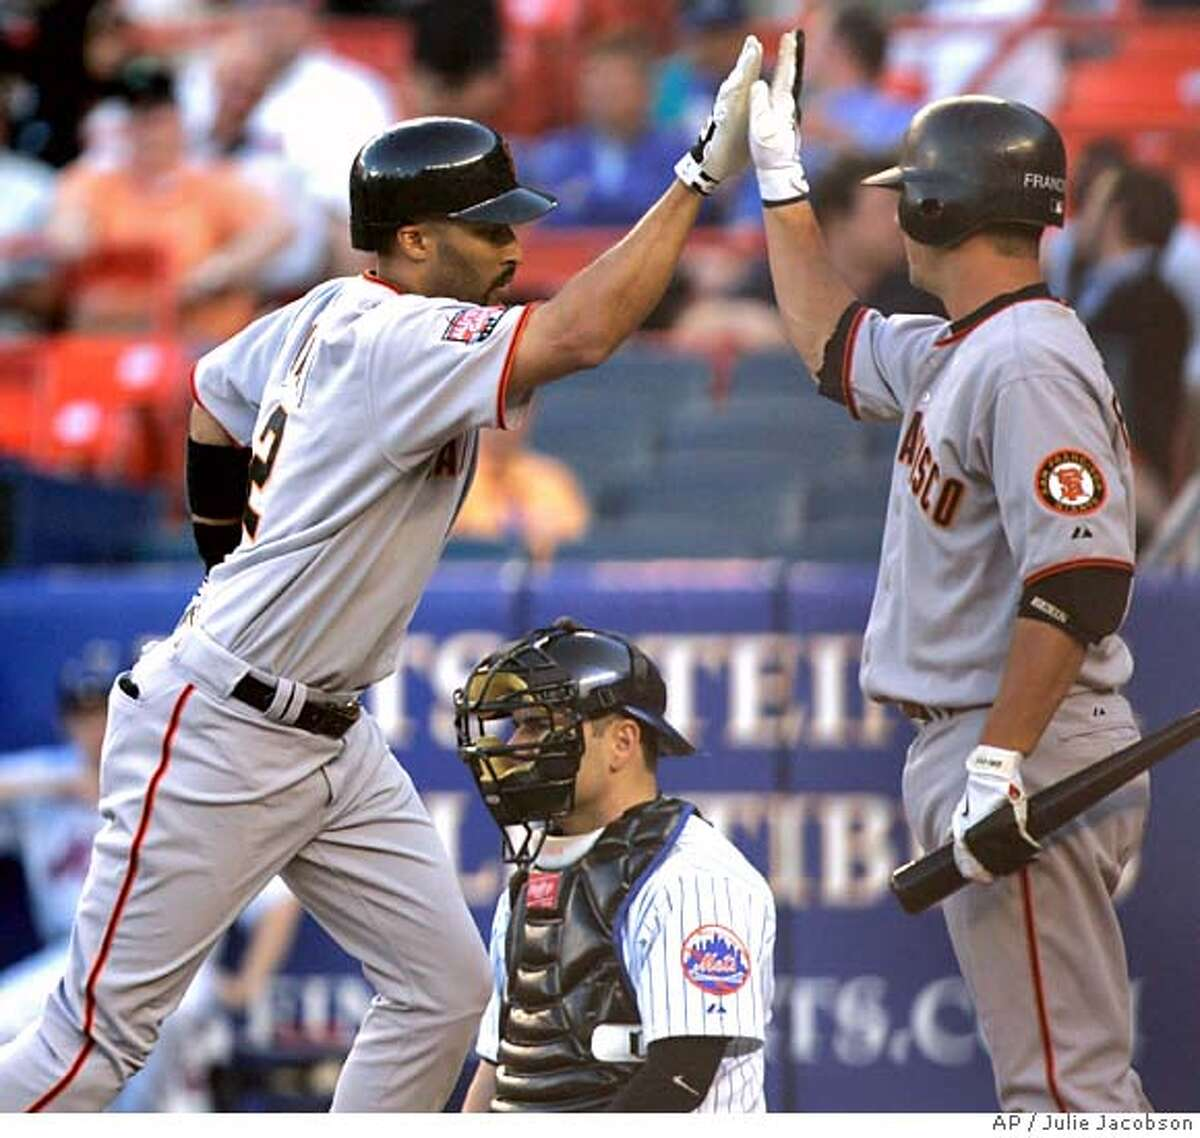 San Francisco Giants' Randy Winn, left, is greeted by Kevin Frandsen at the plate as New York Mets catcher Paul Lo Duca looks on after Winn hit a home run during the first inning in Major League Baseball action Tuesday, May 29, 2007 at Shea Stadium in New York. (AP Photo/Julie Jacobson)